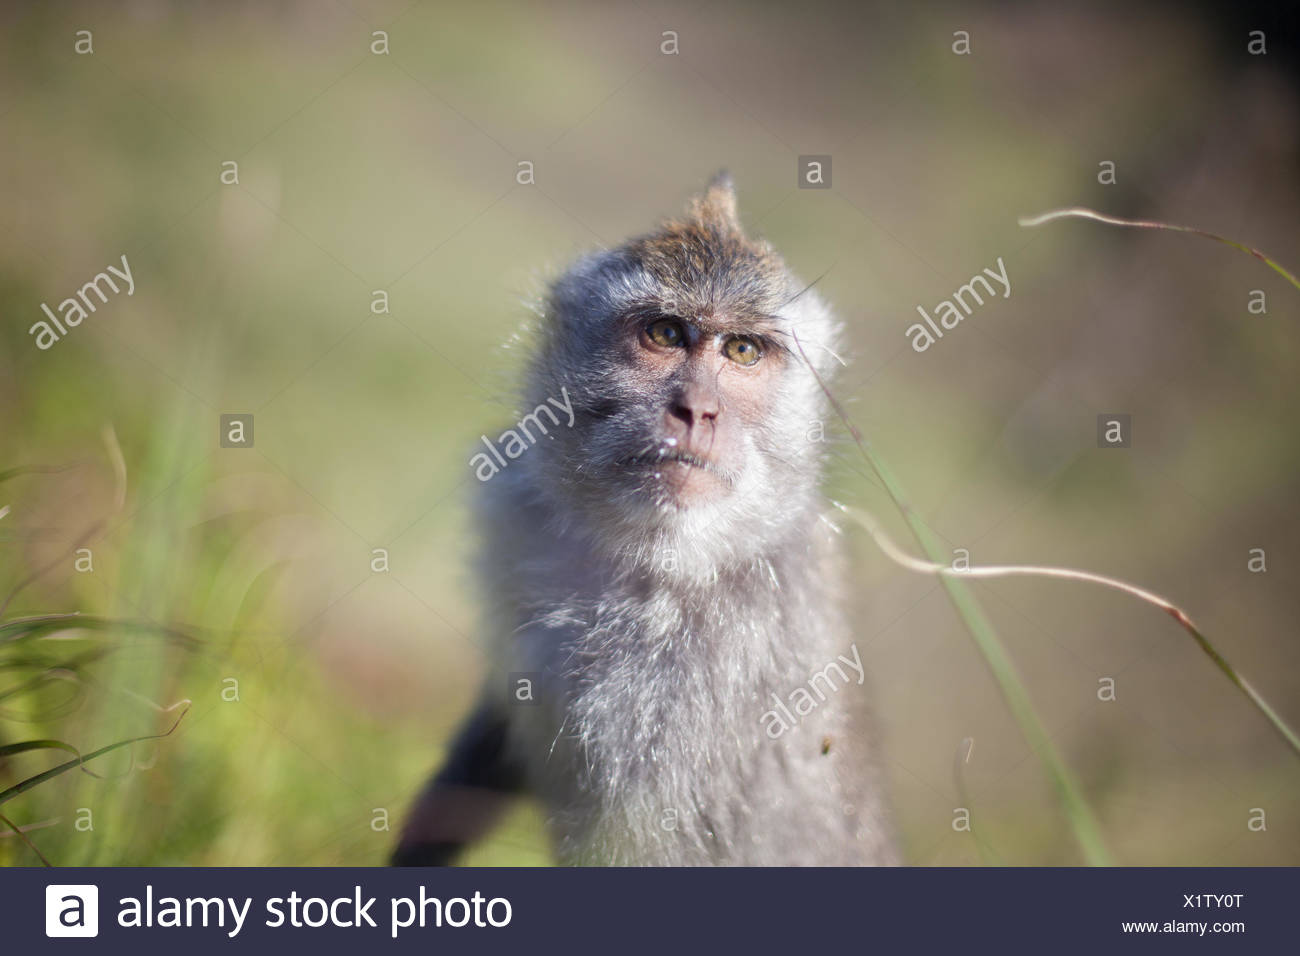 Portrait d'un singe Photo Stock